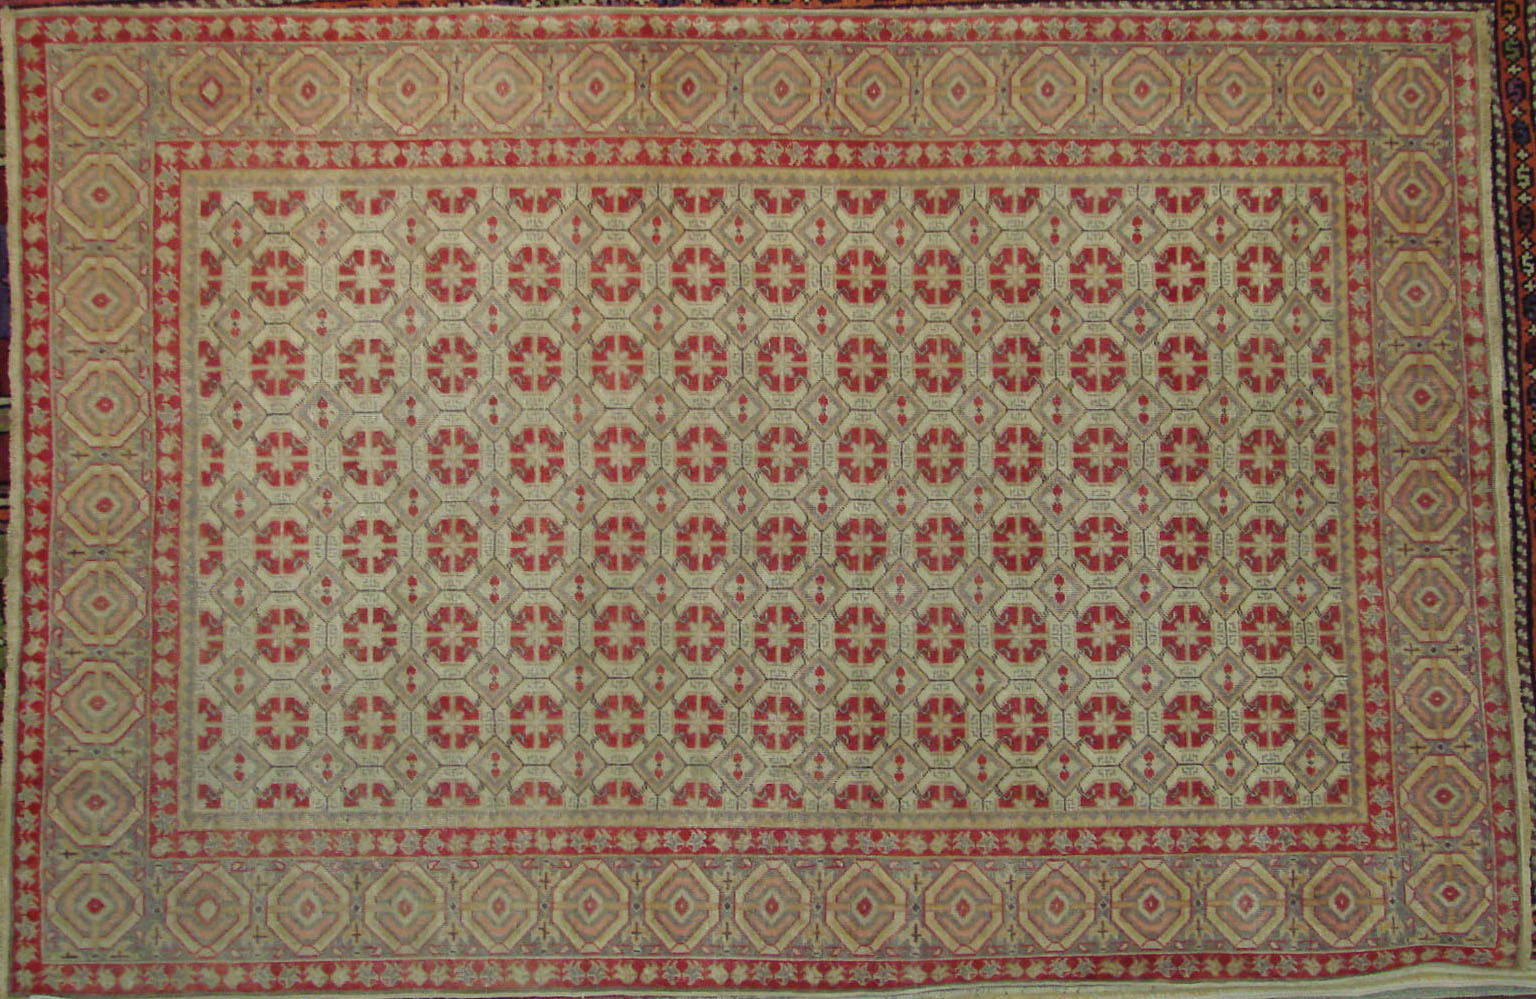 4x6 Oushak Hand Knotted Wool Area Rug - MR021675